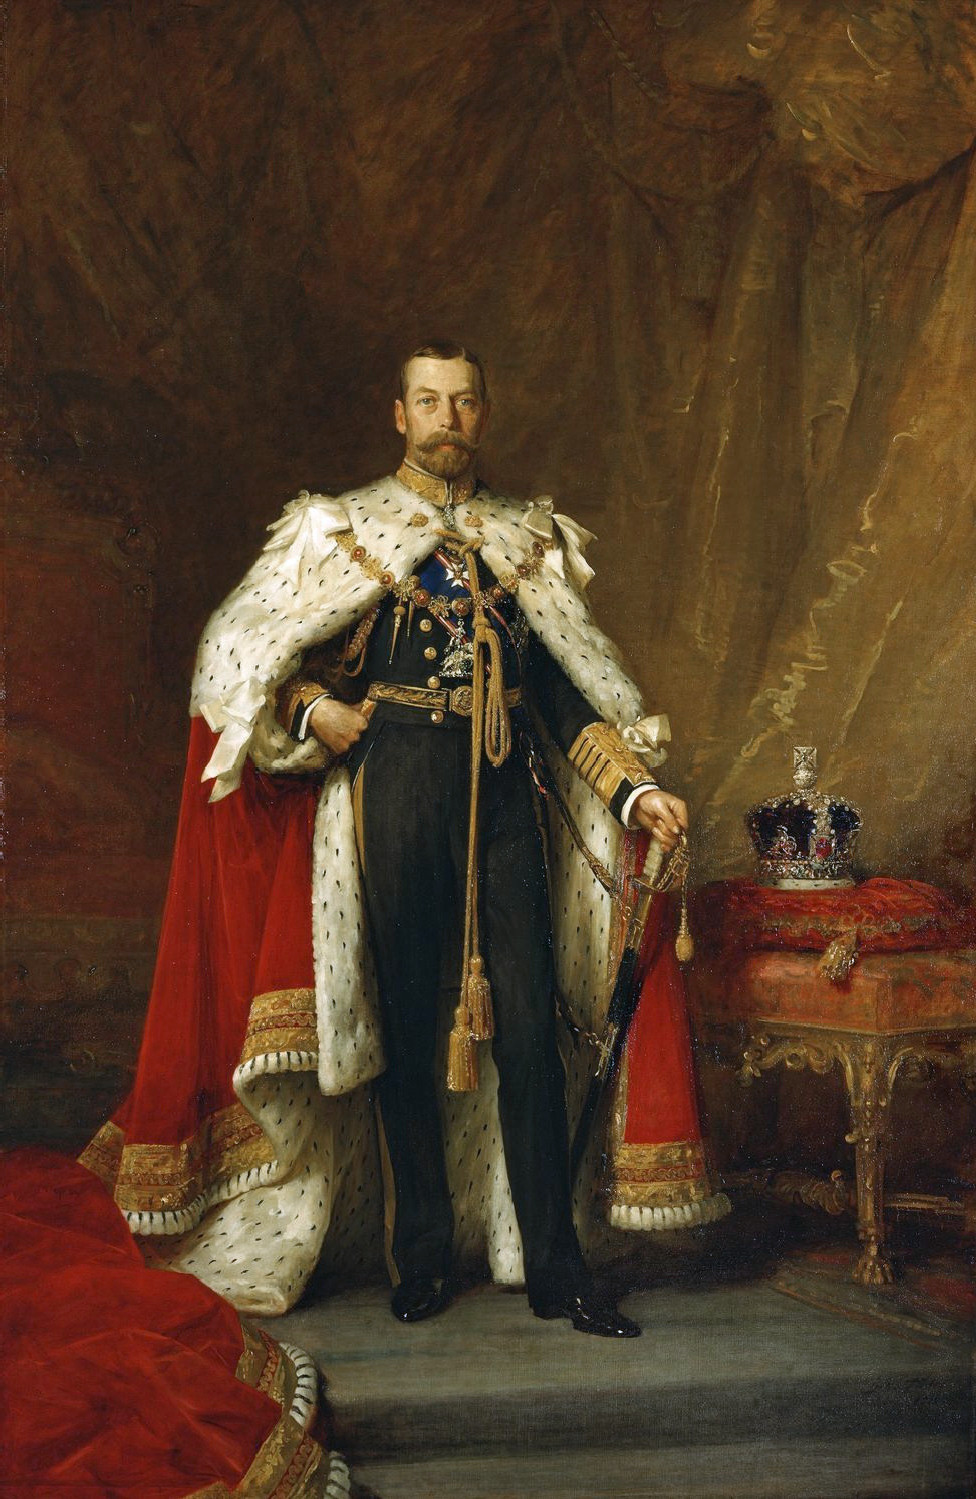 Coronation portrait of George V by Luke Fildes